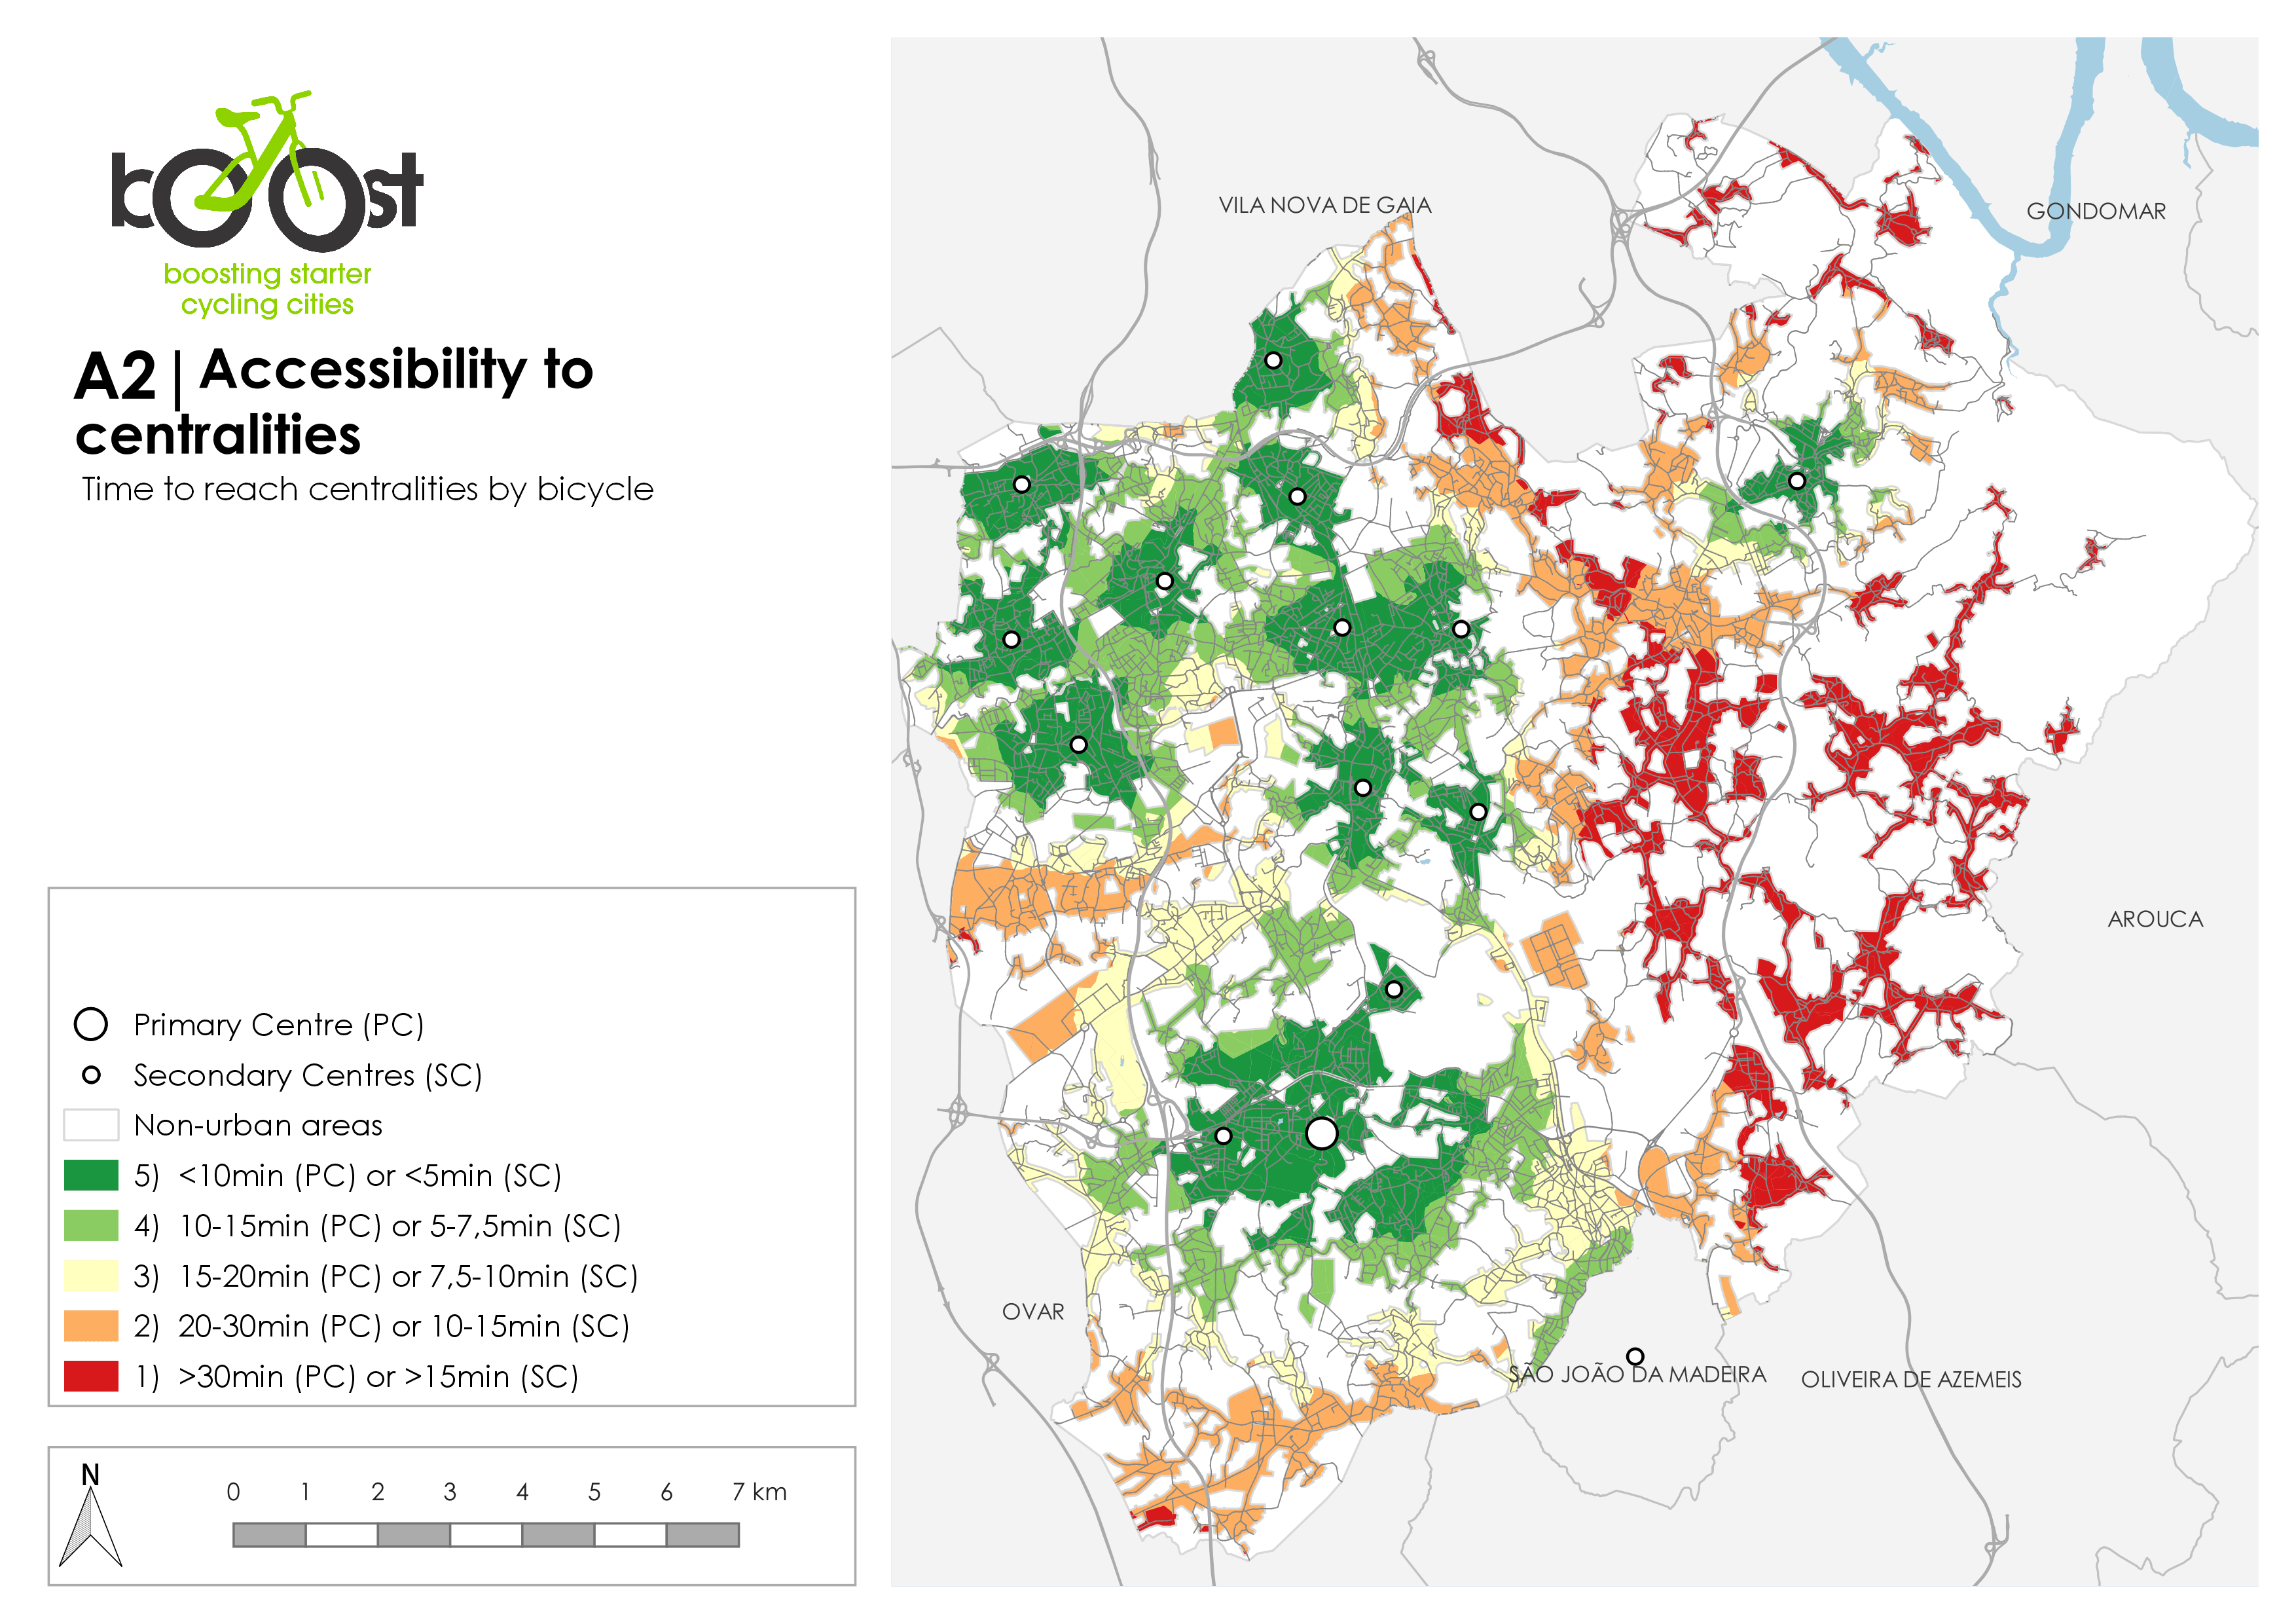 A2 | Accessibility to centralities